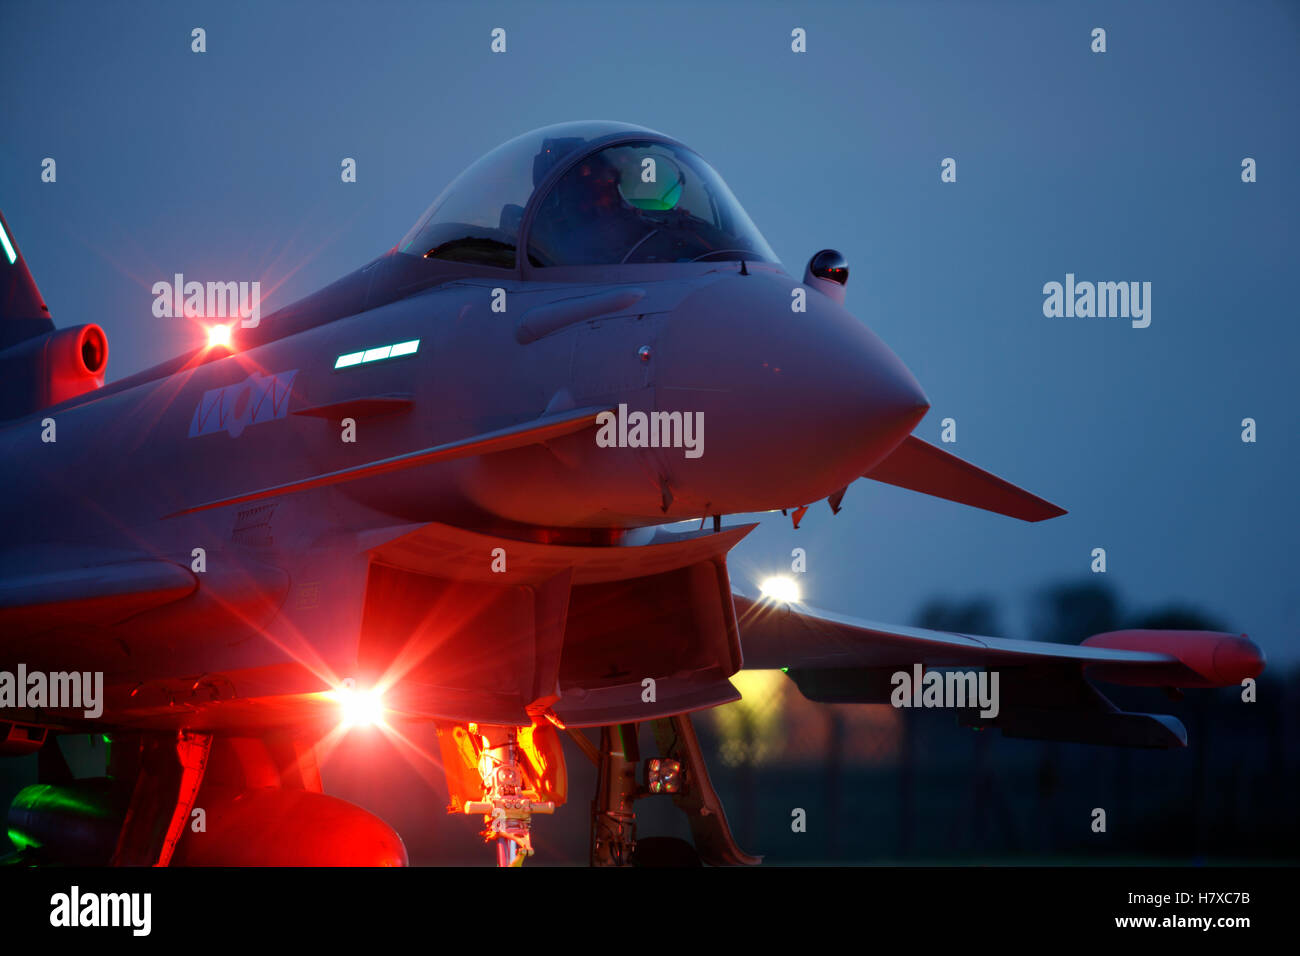 Royal Air Force Eurofighter Typhoon aircraft operating at night at RAF Coningsby in Lincolnshire - Stock Image